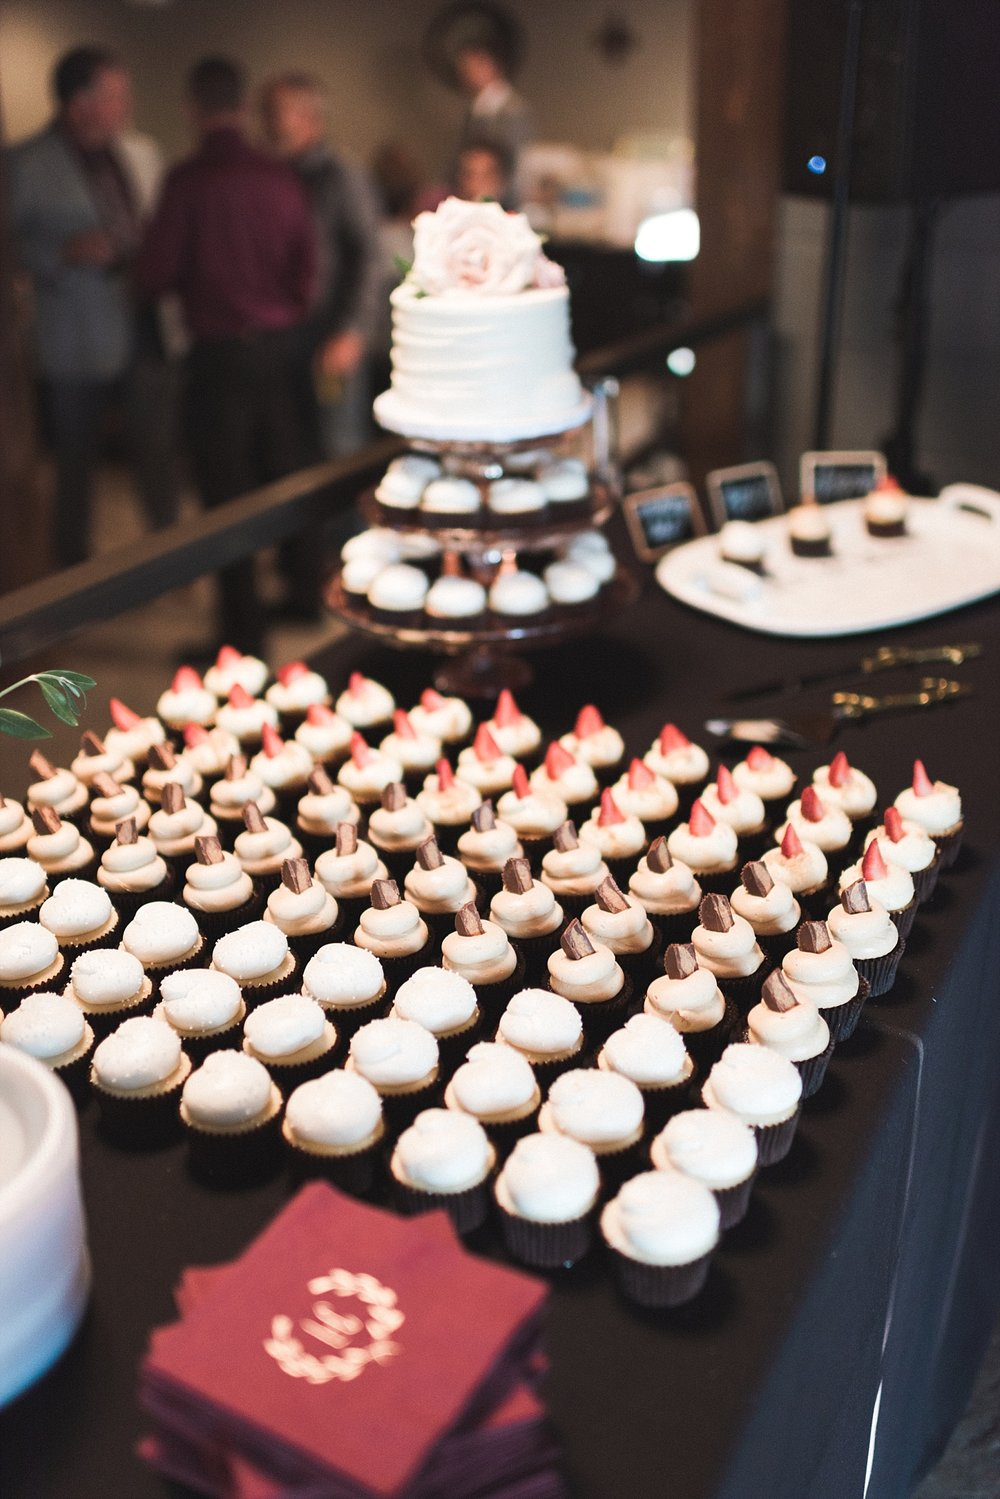 Wedding photography reception cupcake dessert Wedding cake wedding details